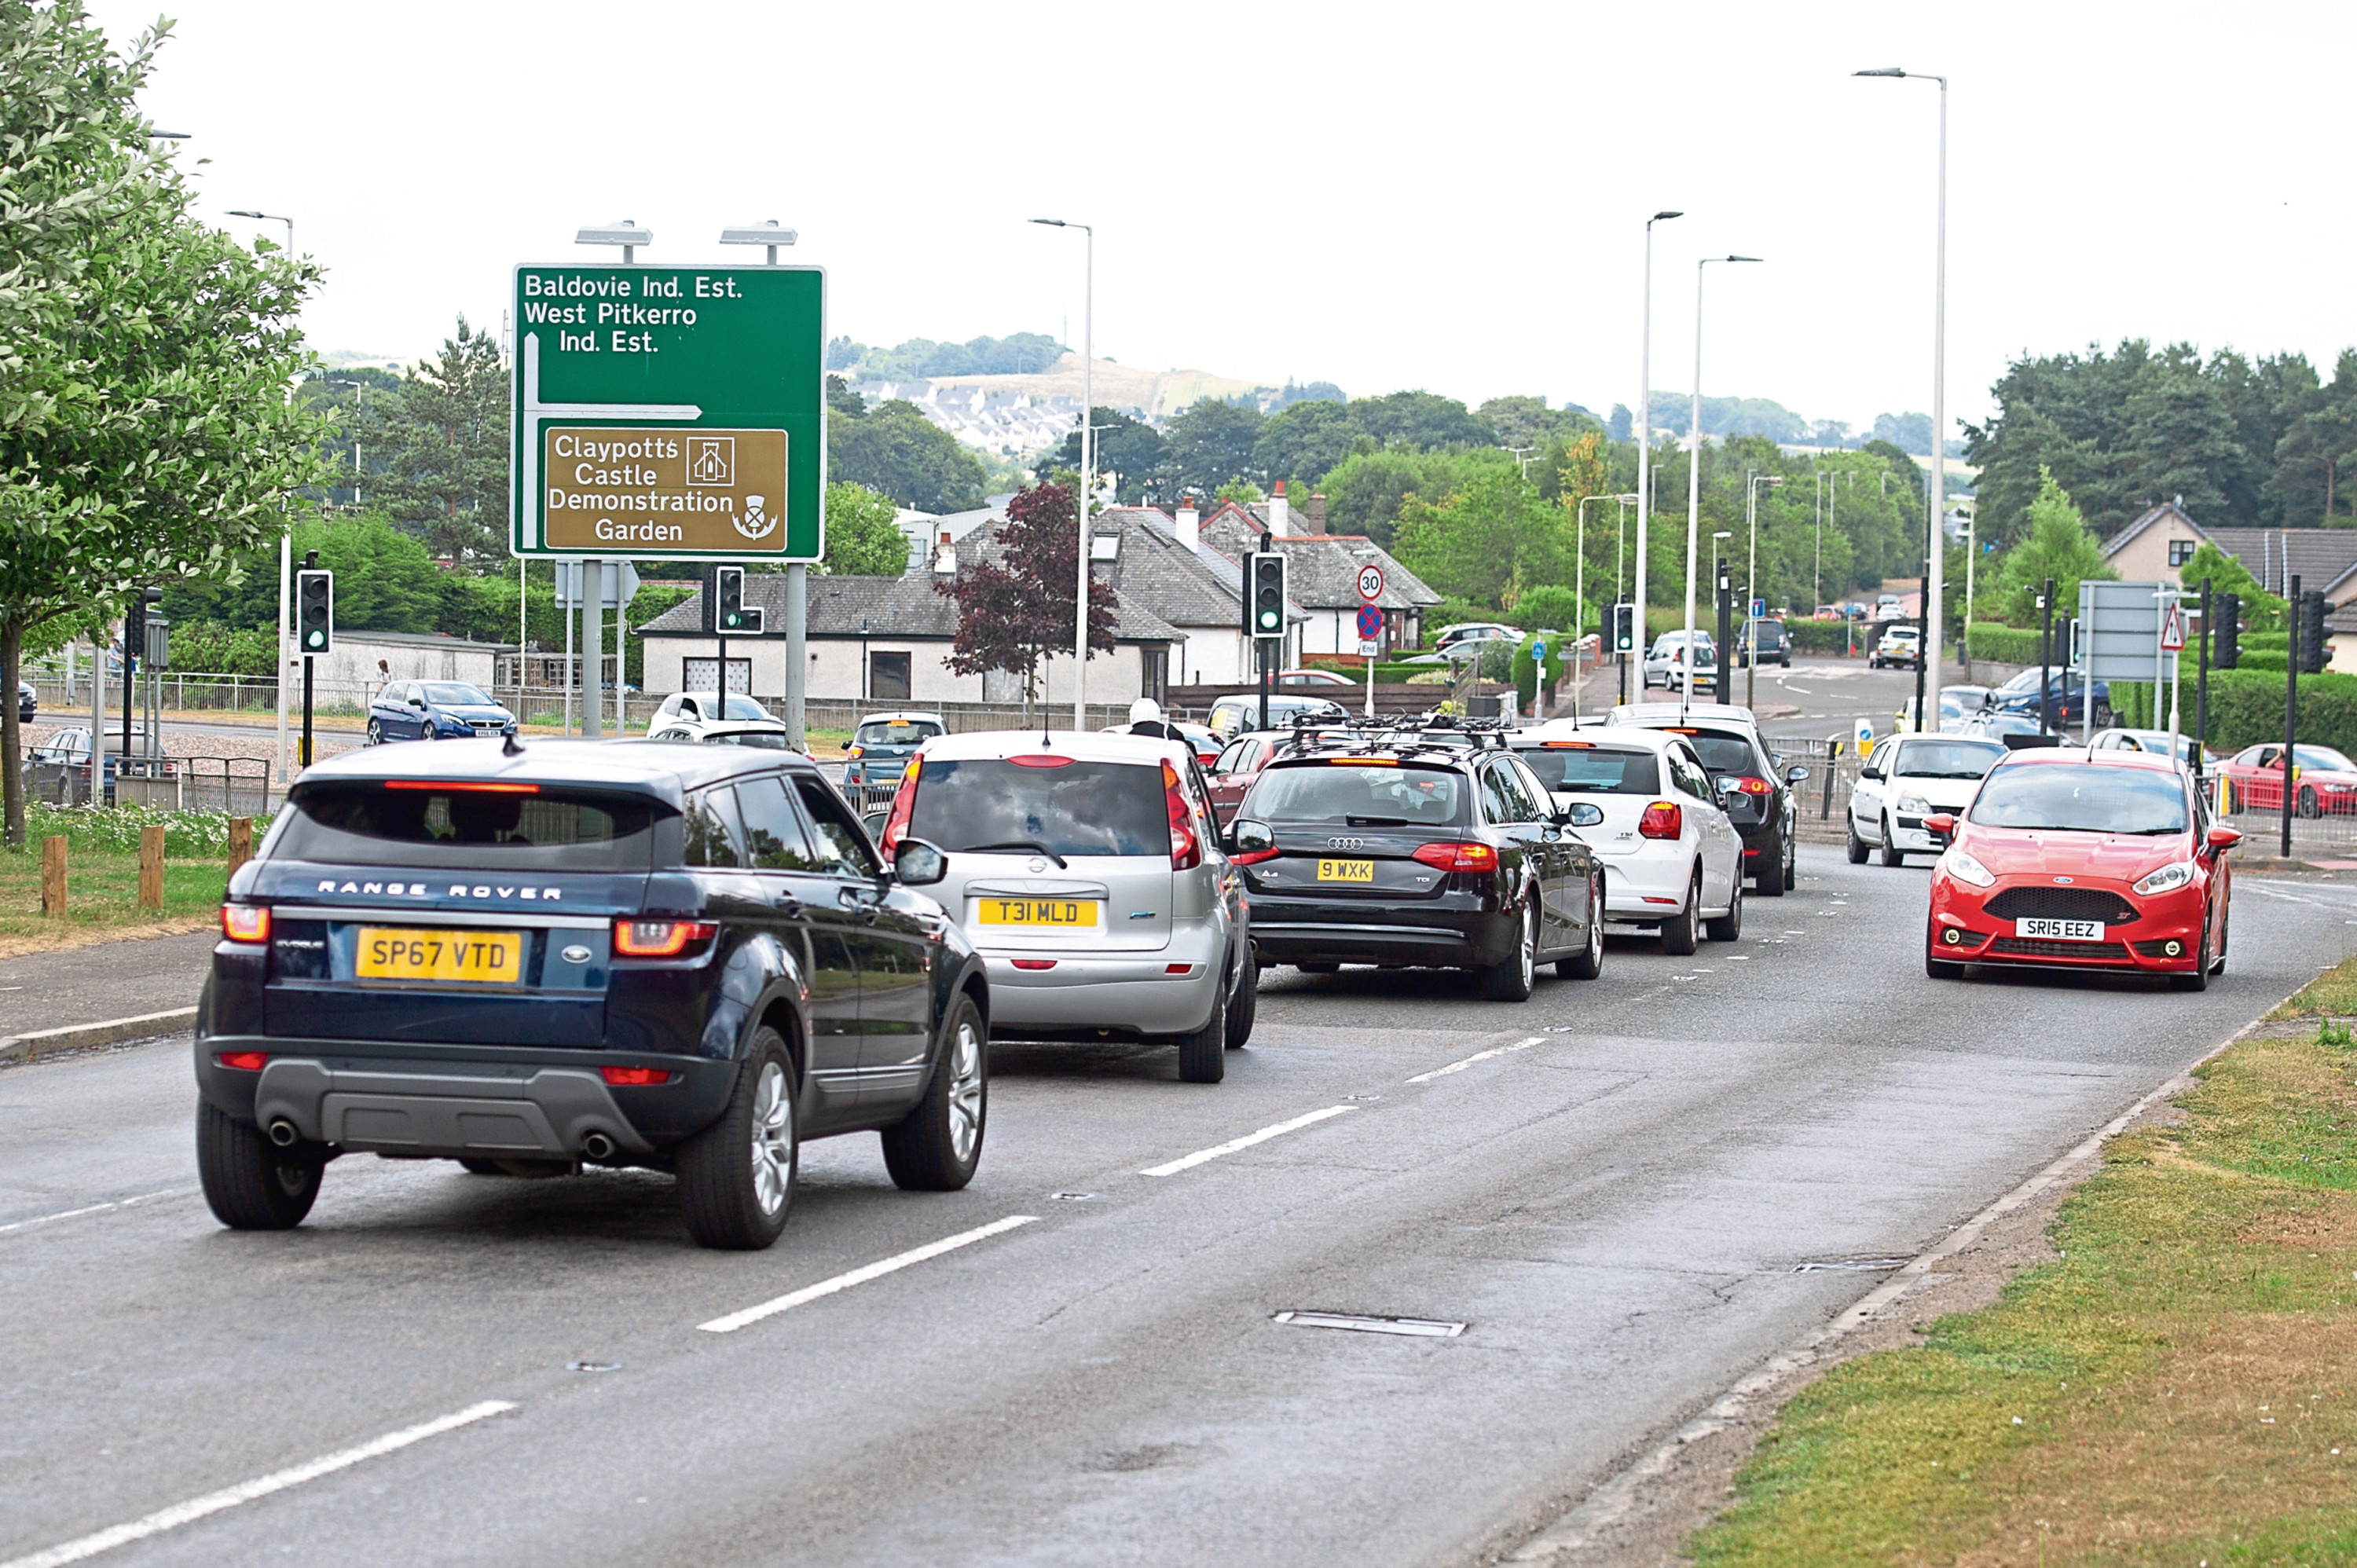 Traffic negotiating the Claypotts junction.